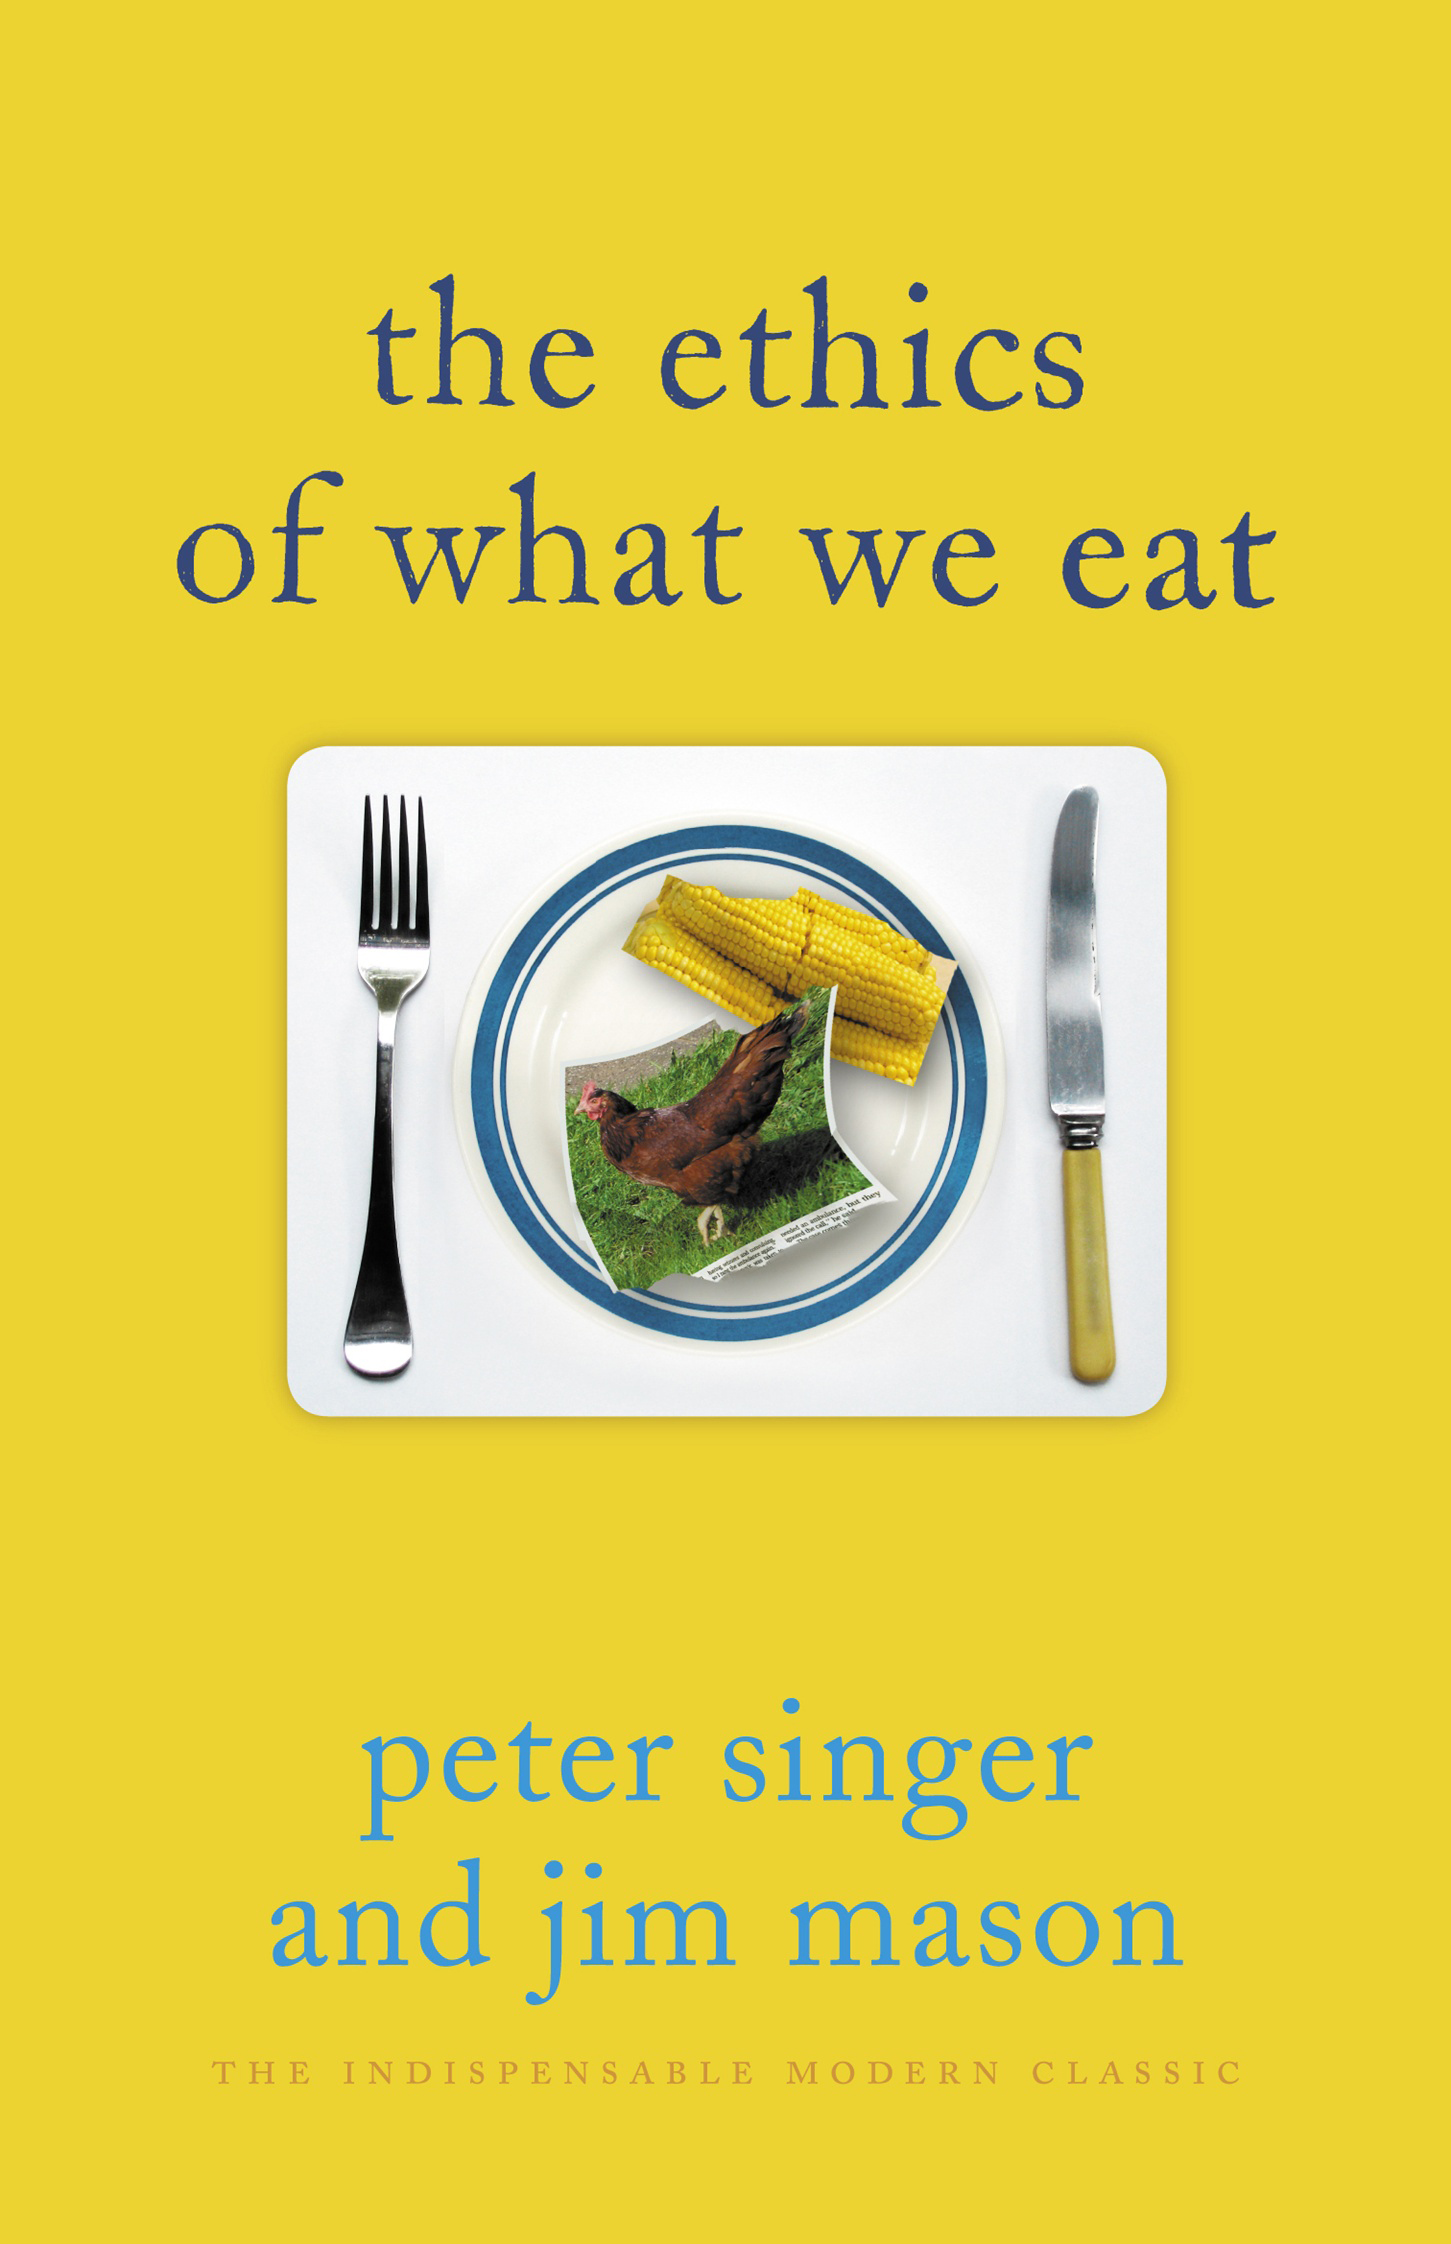 ethics in the real world brief essays on things that matter peter singer 23 99 the ethics of what we eat